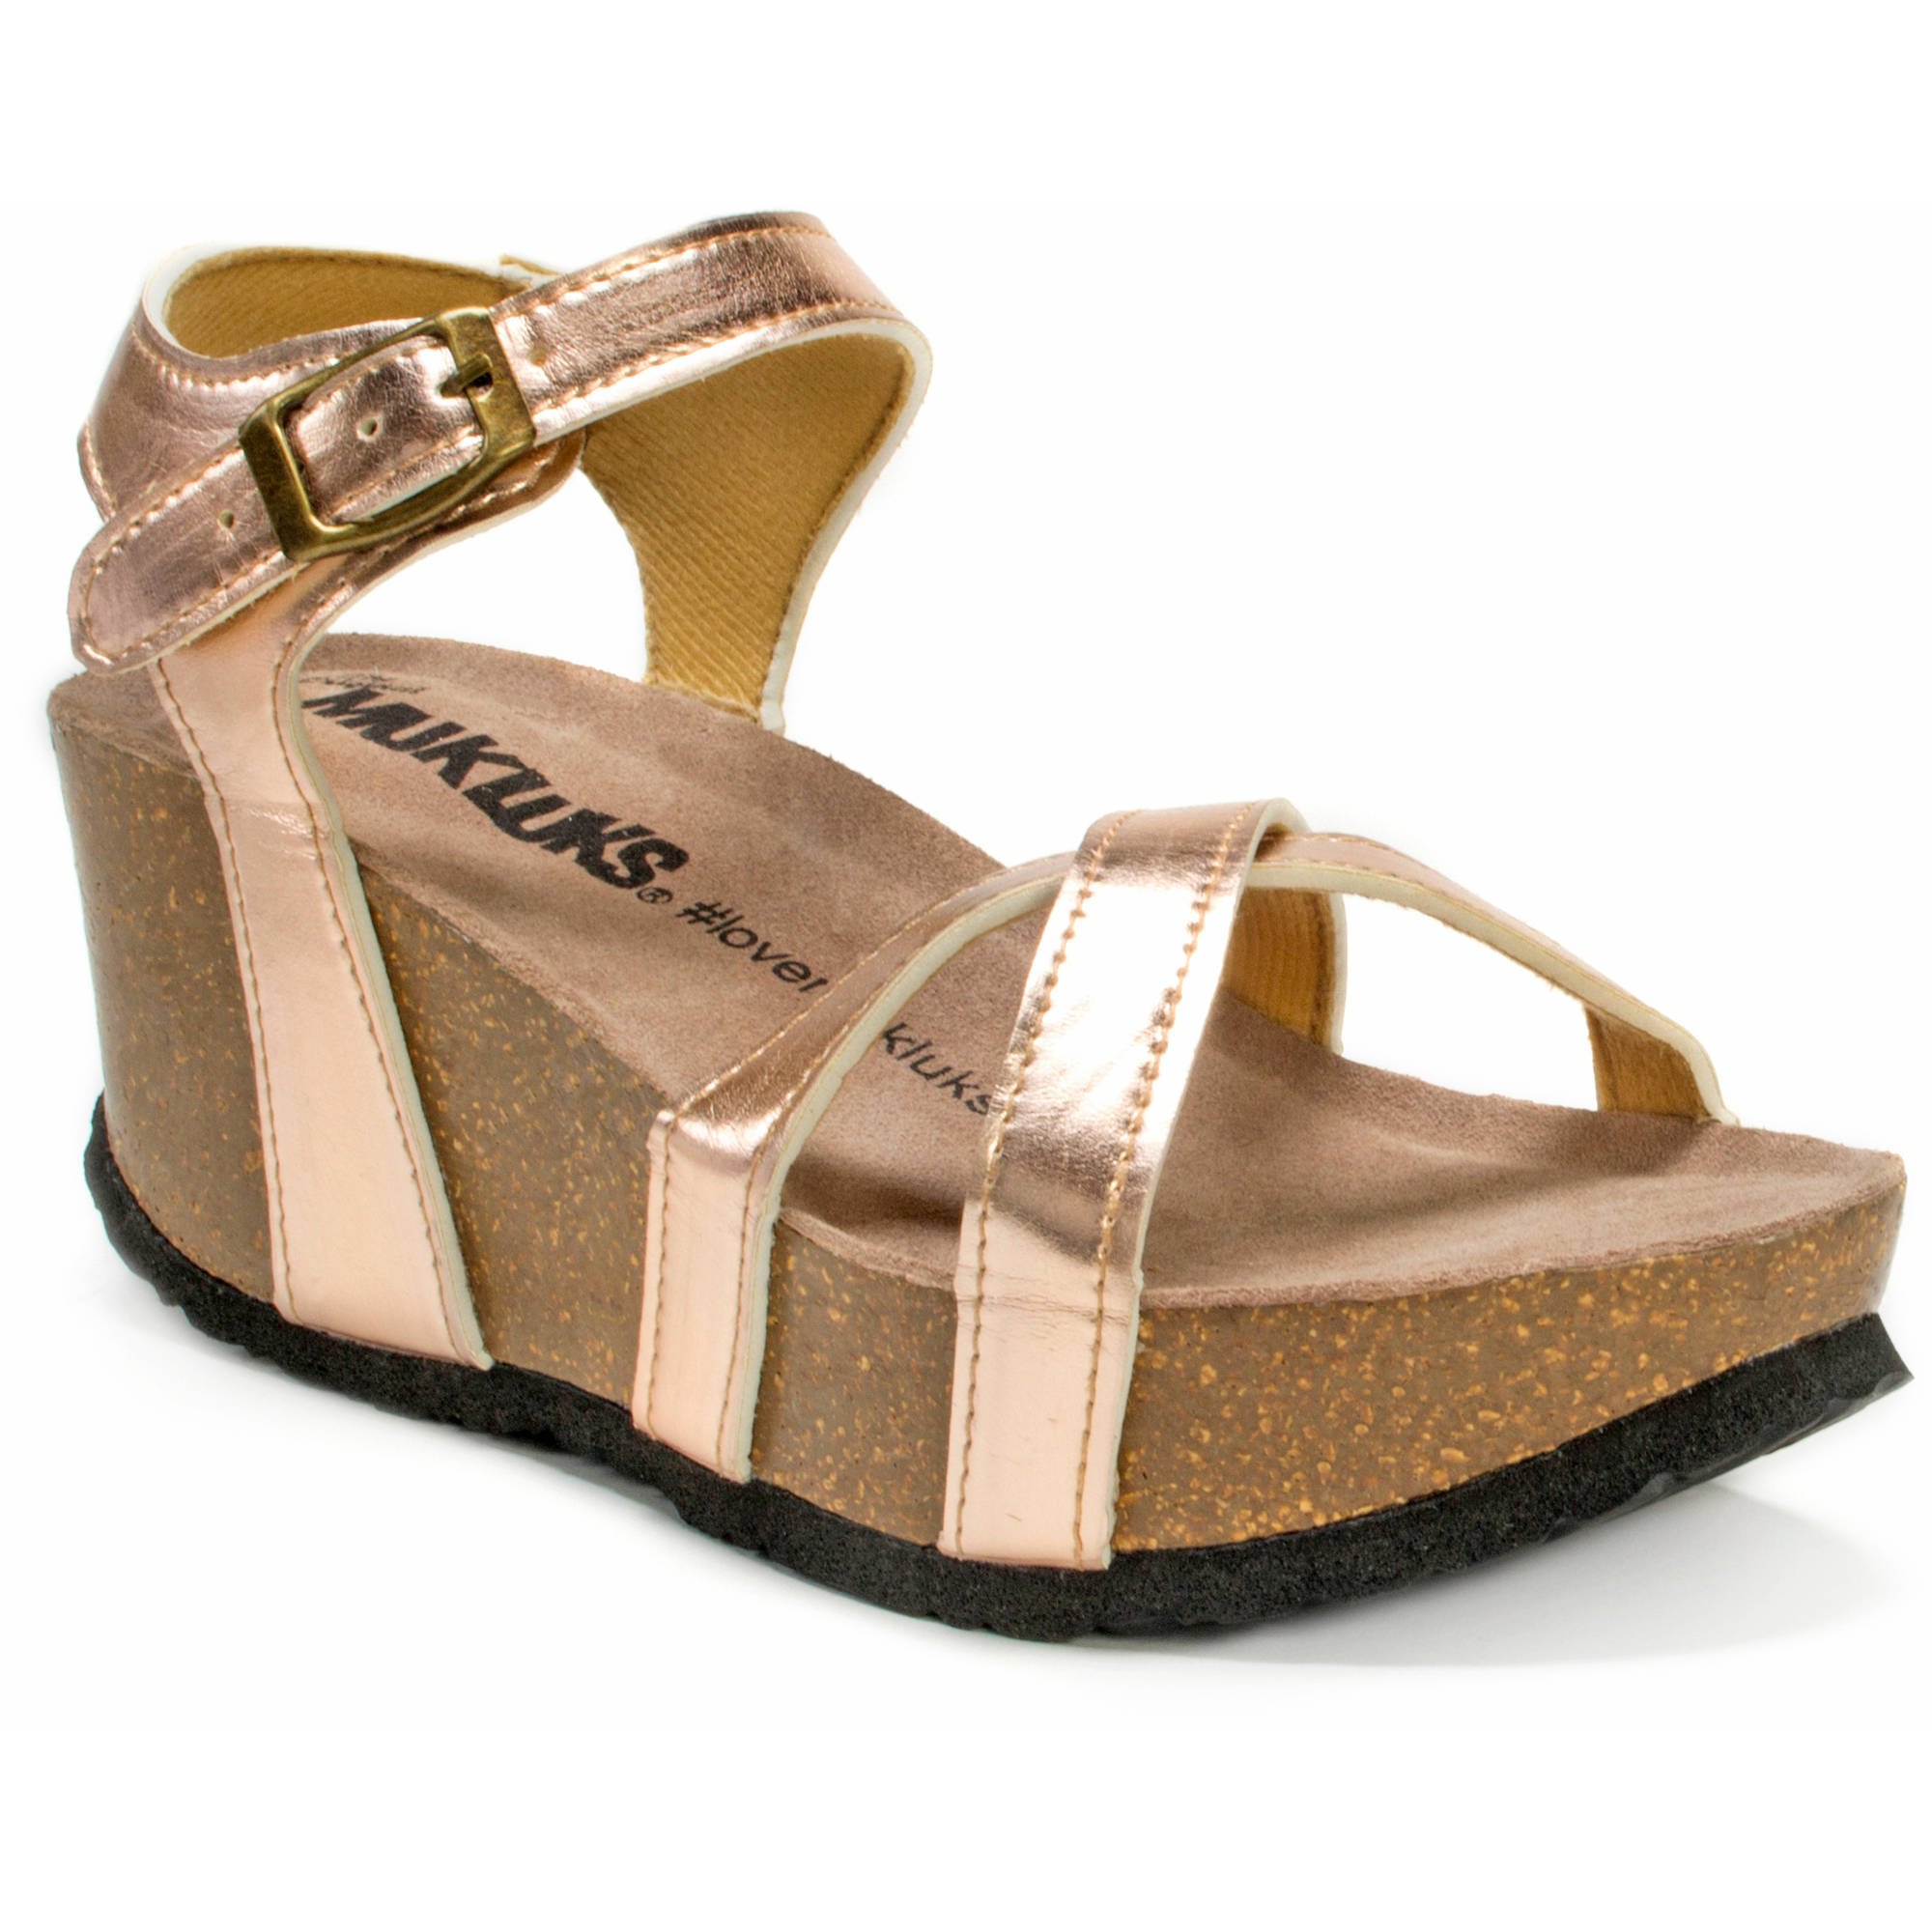 MUK LUKS Women's Lilith Wedge Sandals